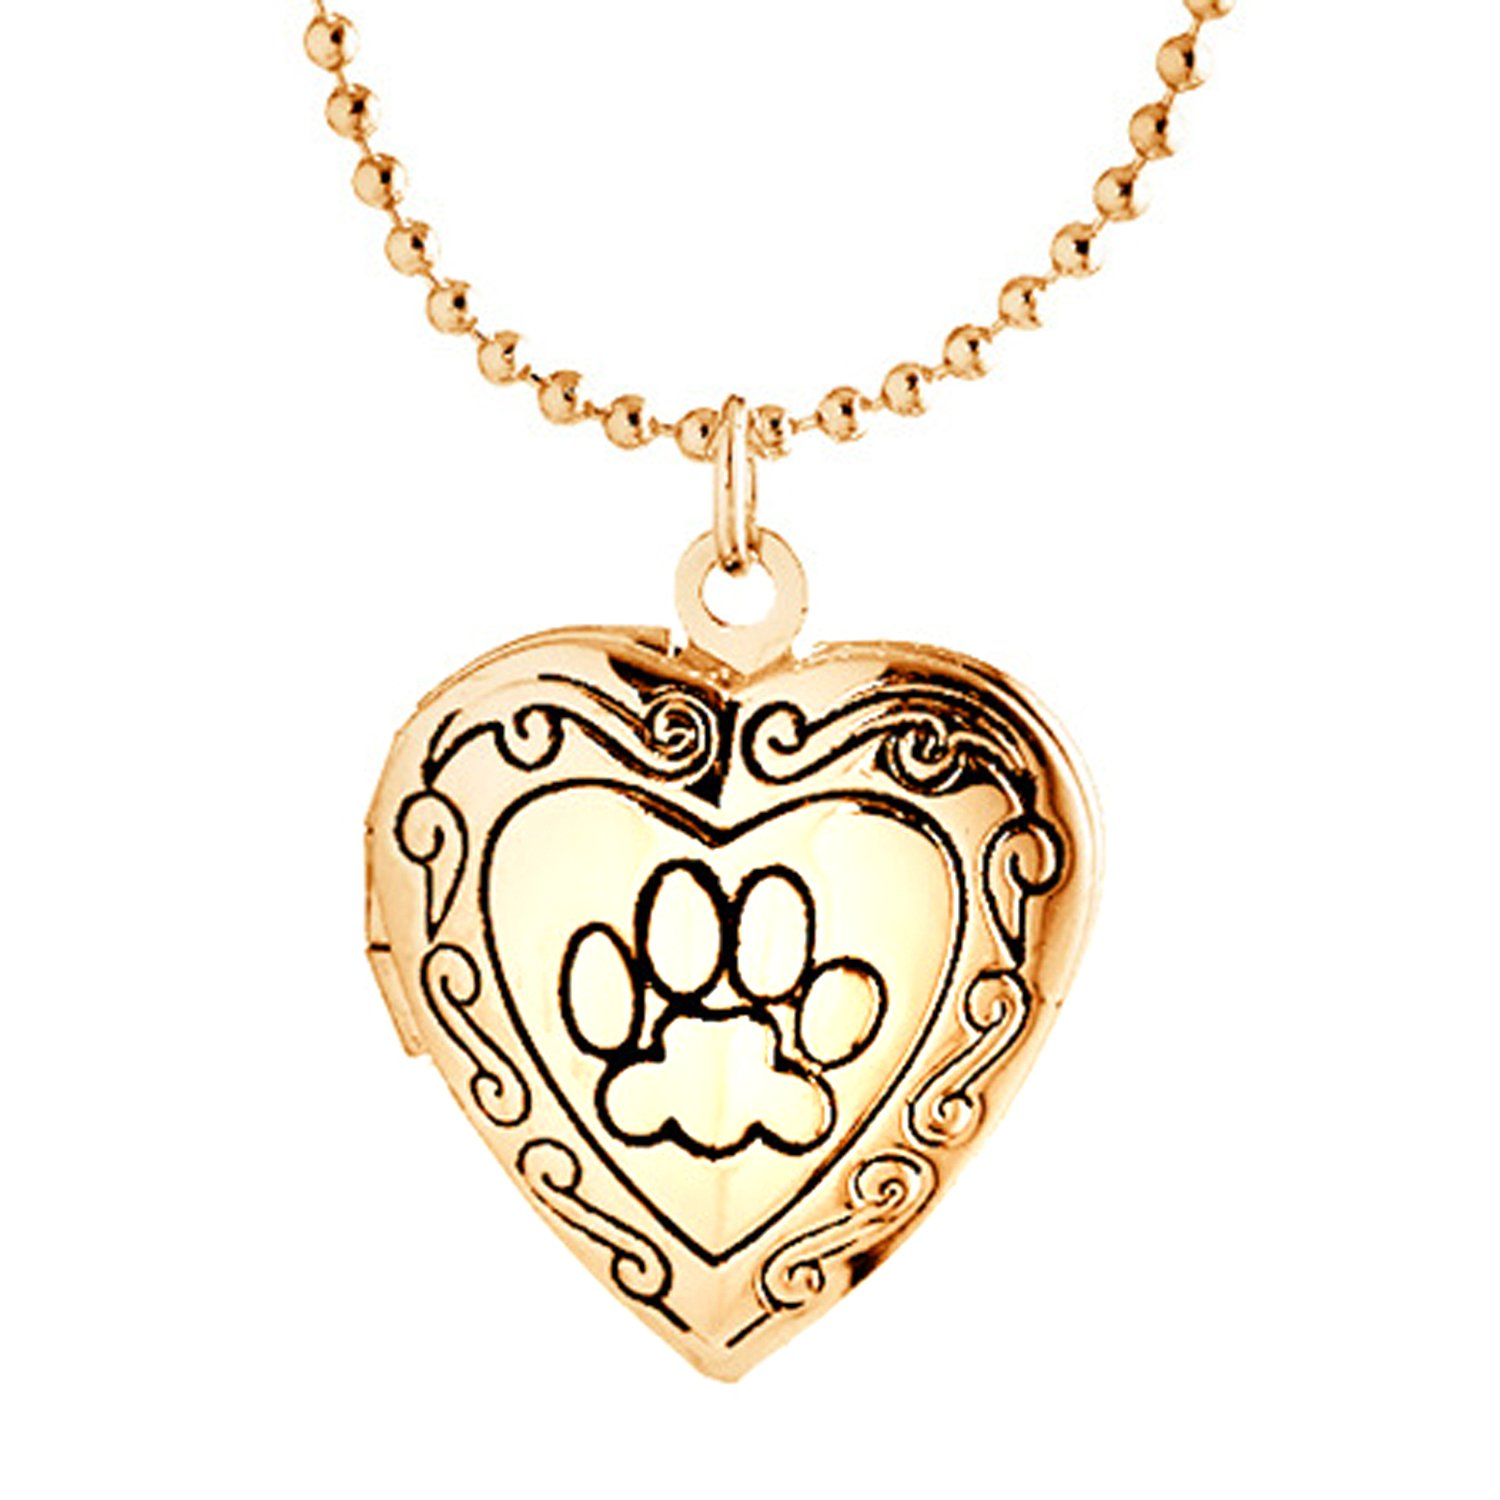 dual love jewellery for and pendant dp valentine heart beautiful lockets amazon at girls buy locket prices meenaz in online store gifts women low india